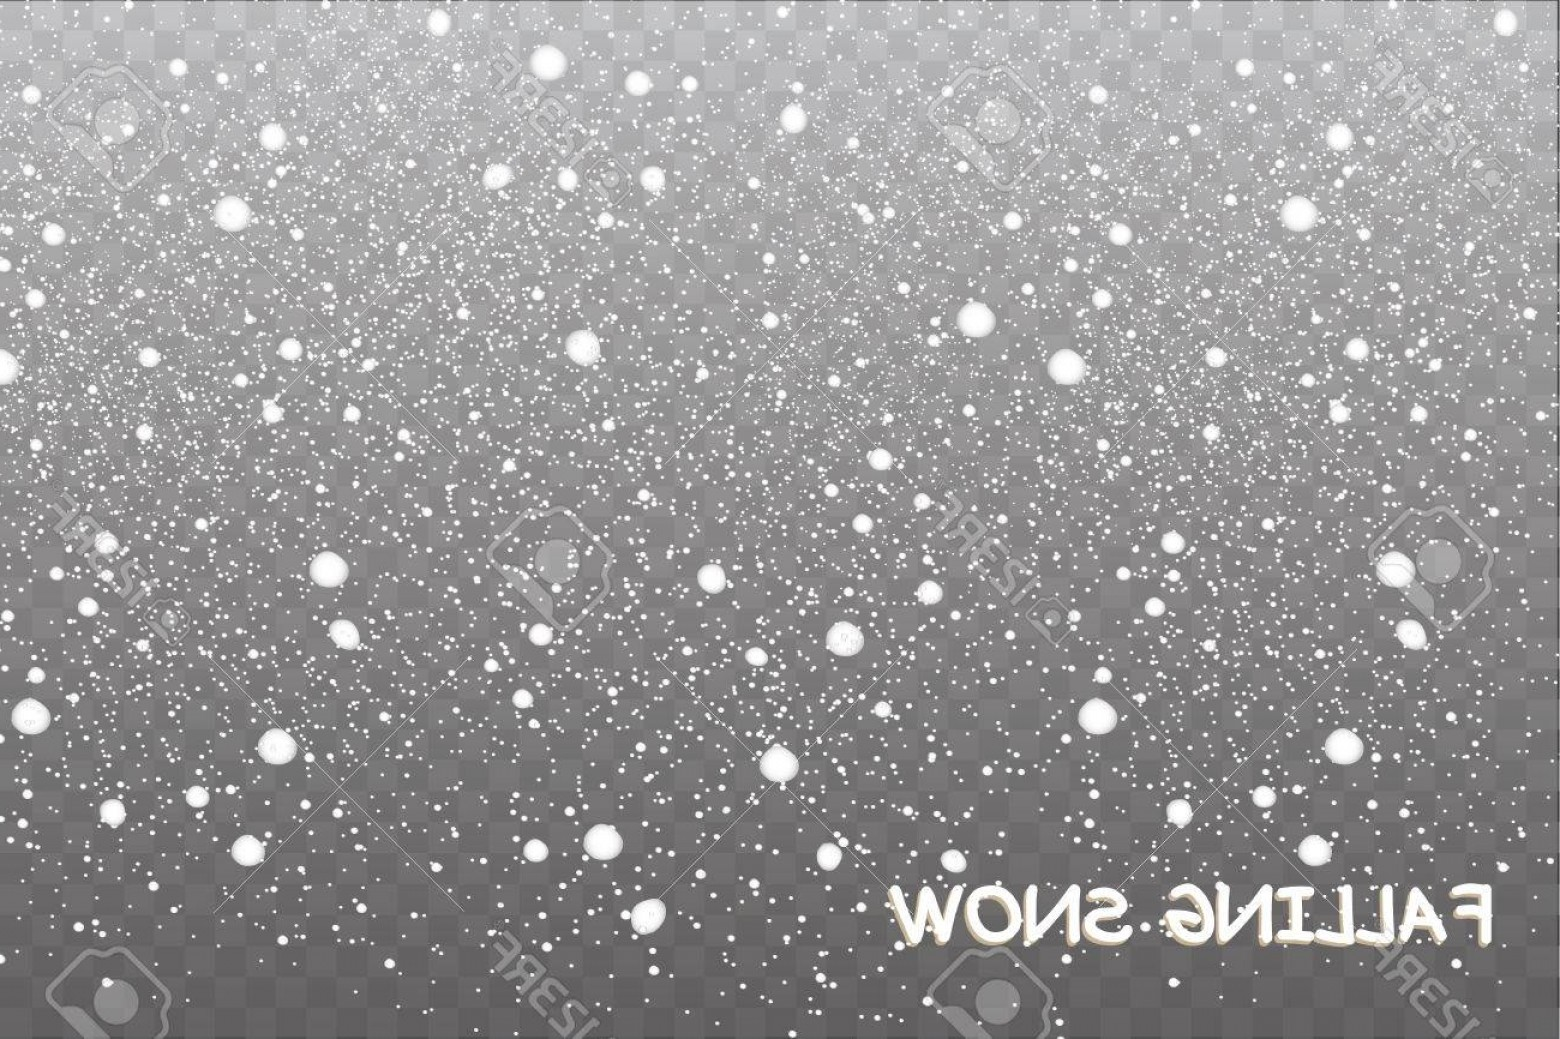 Snow Falling Vector Free: Photostock Vector Stock Vector Illustration Falling Snow Snowflakes Snowfall Transparent Background Fall Of Snow